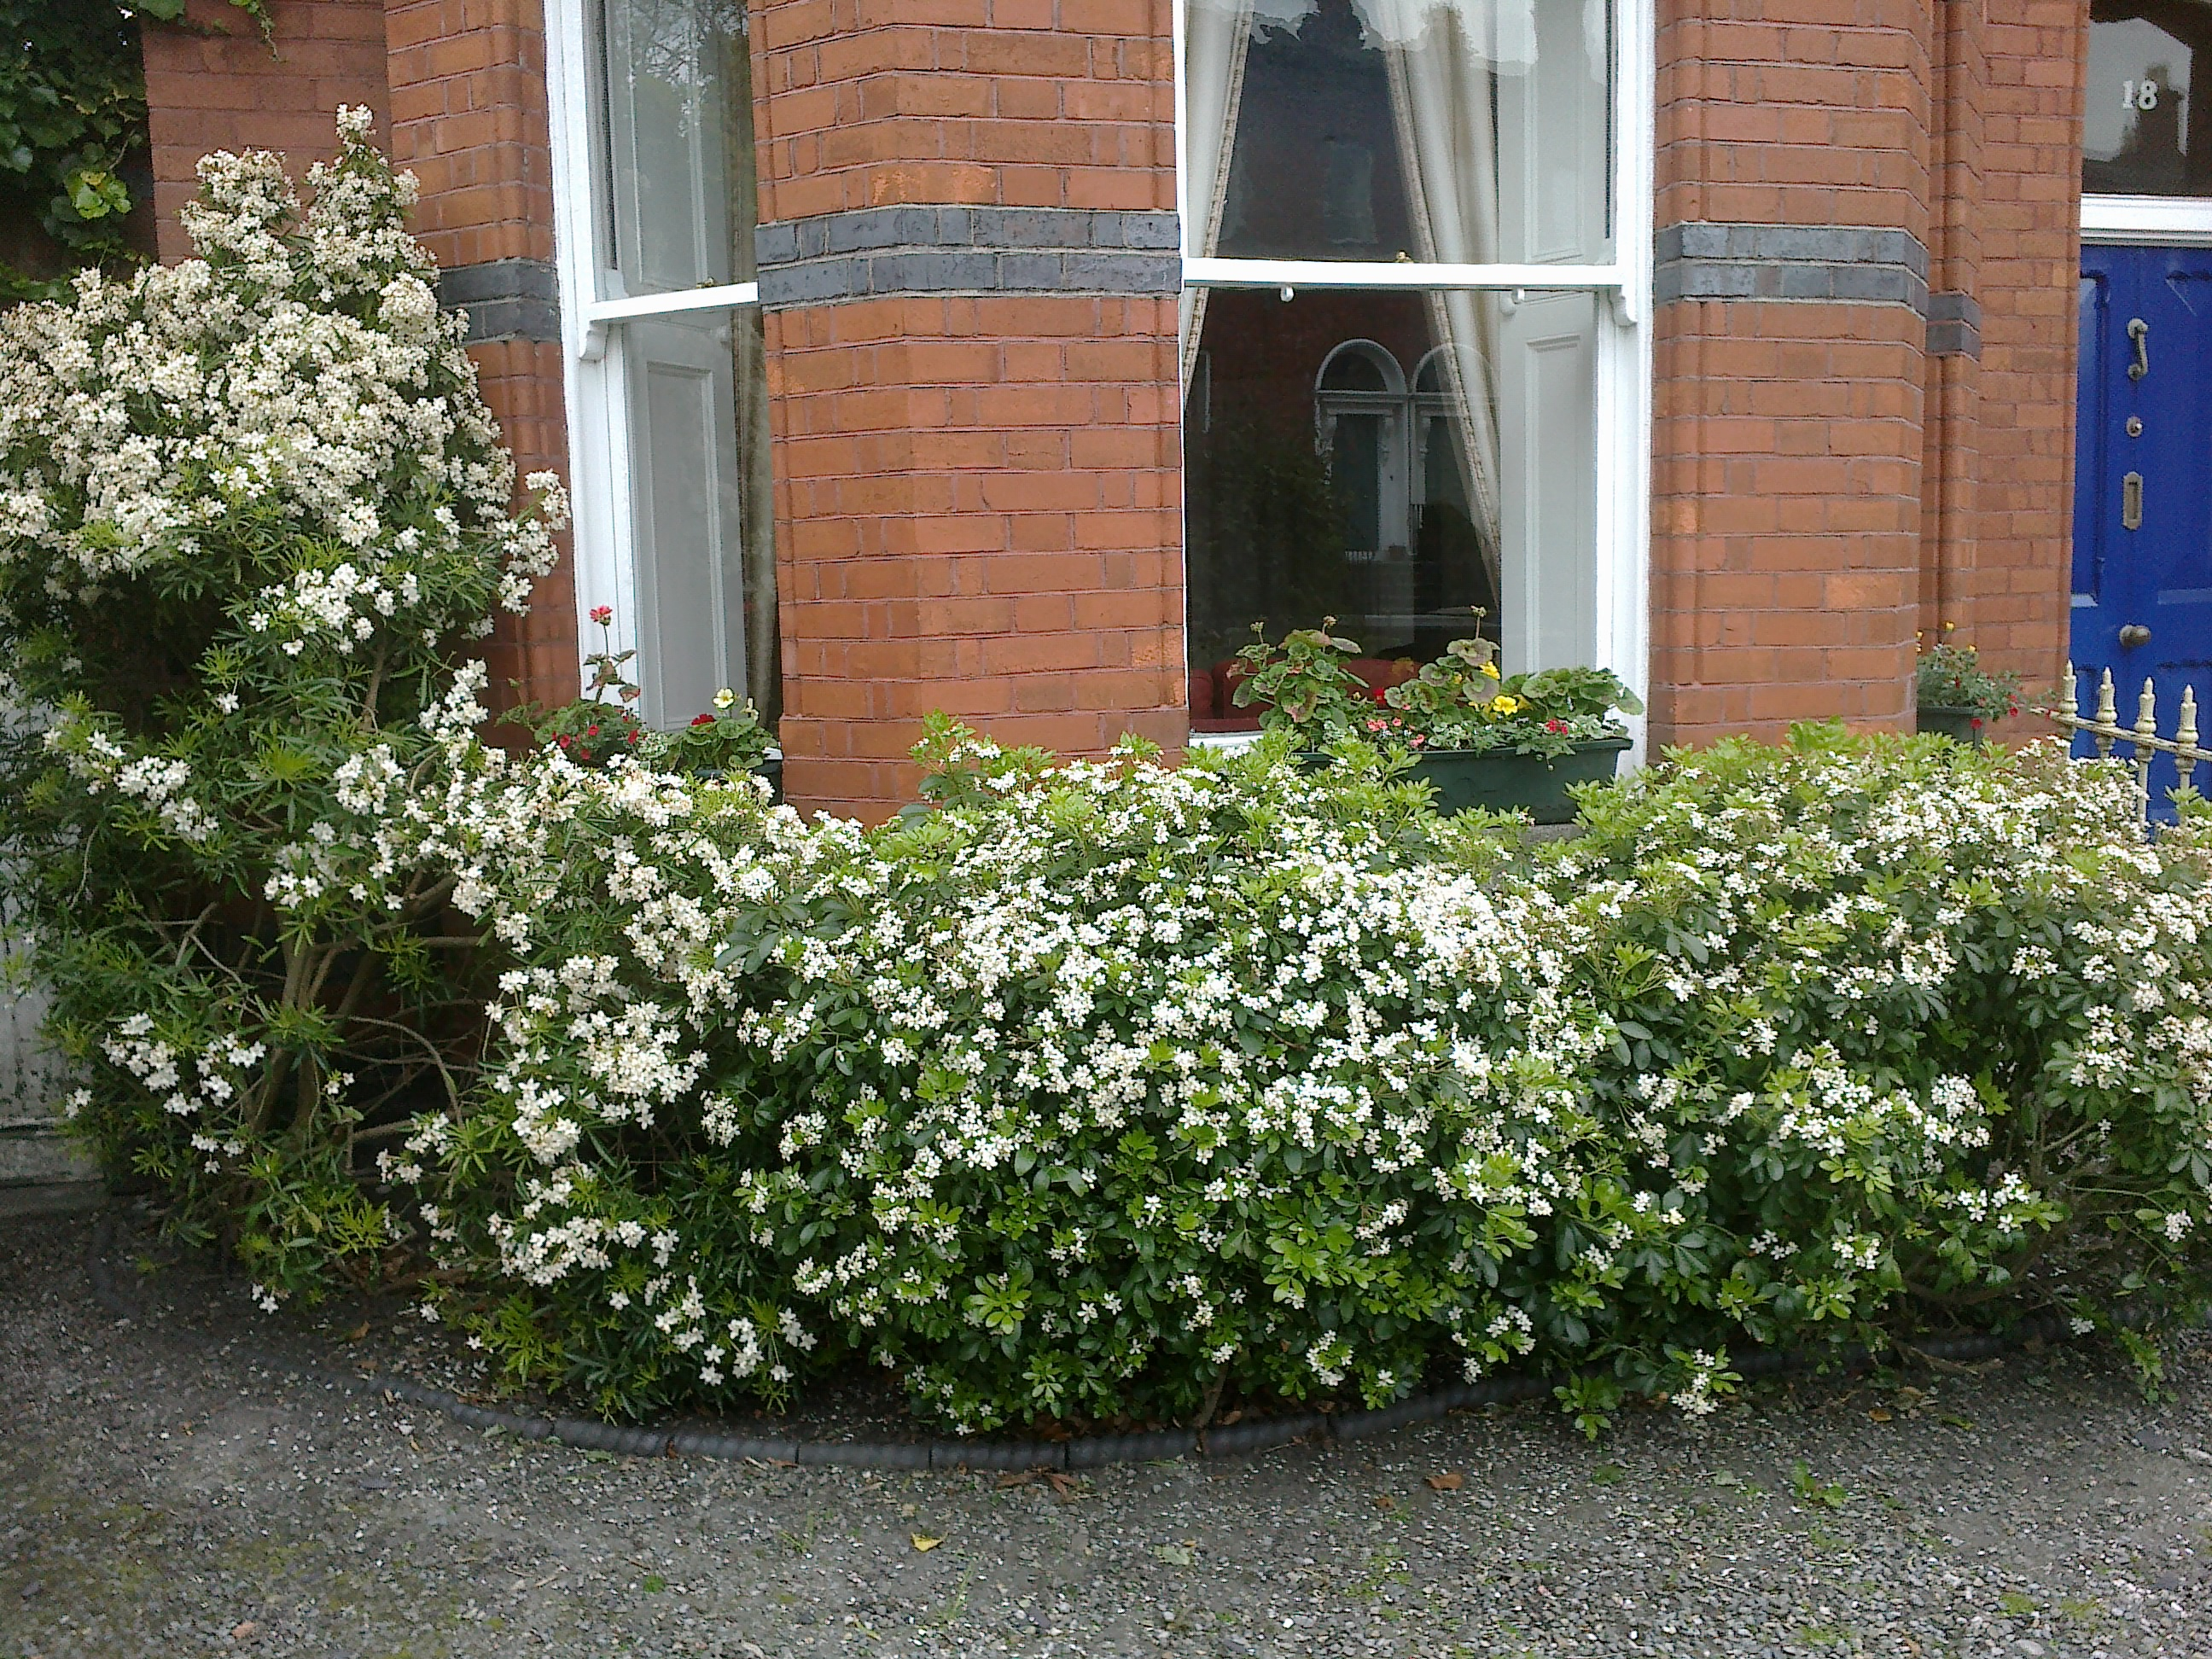 The front garden choisya and orange blossom